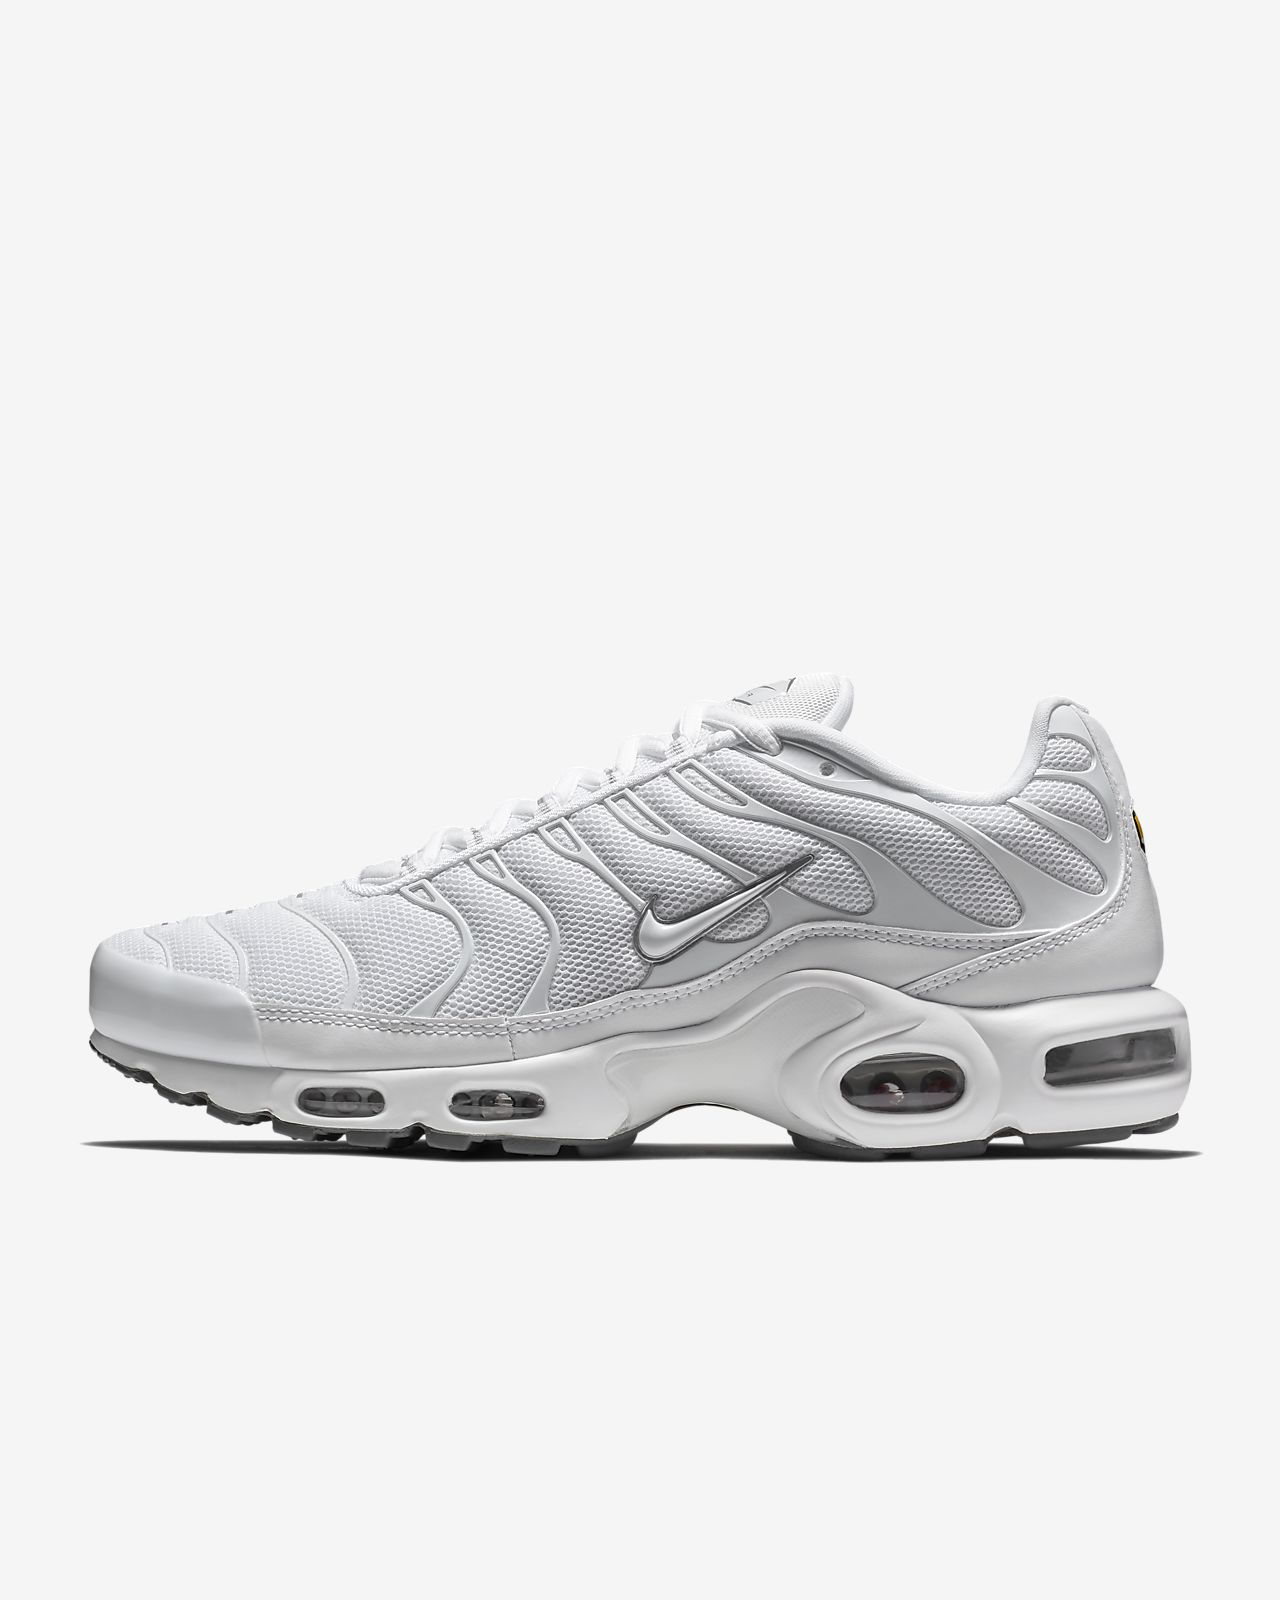 cfb243482b2 Nike Air Max Plus Men s Shoe. Nike.com GB